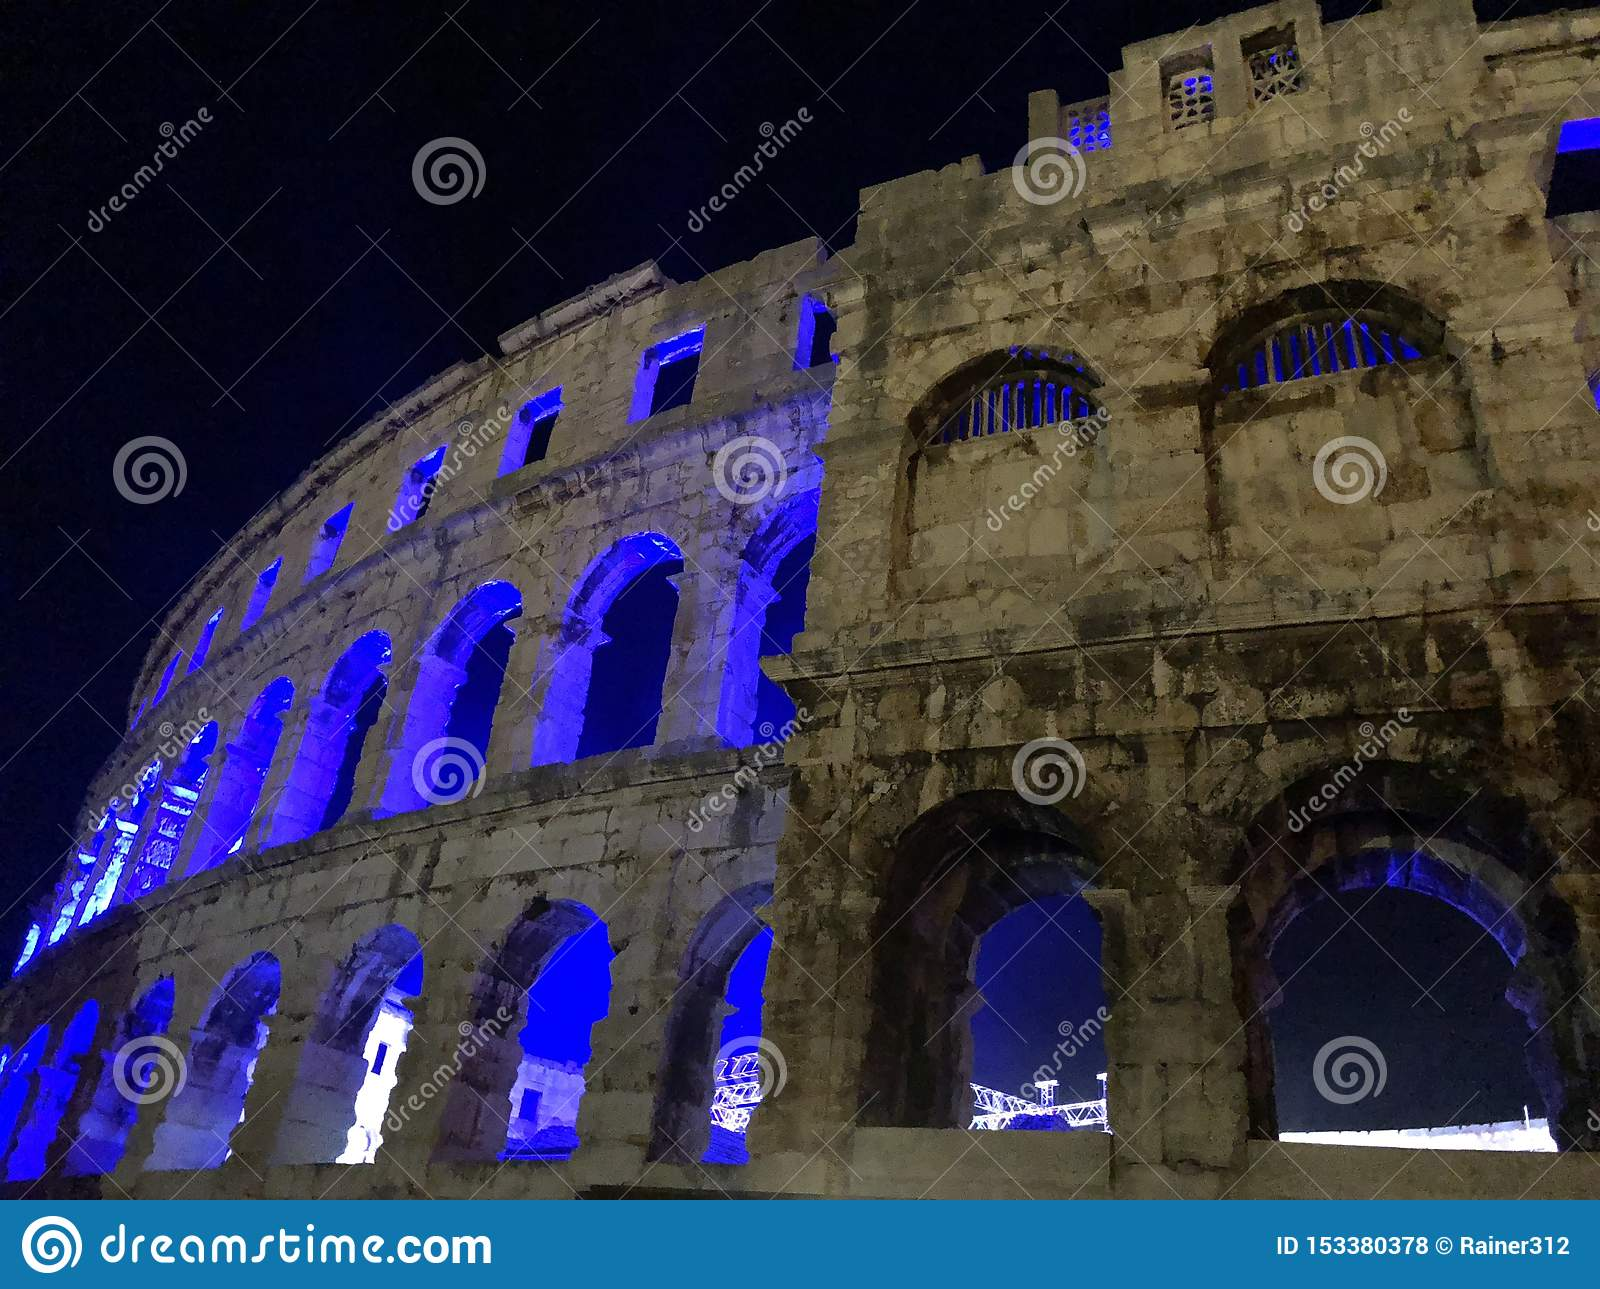 Illuminated amphitheatre ruin in Pula / Croatia